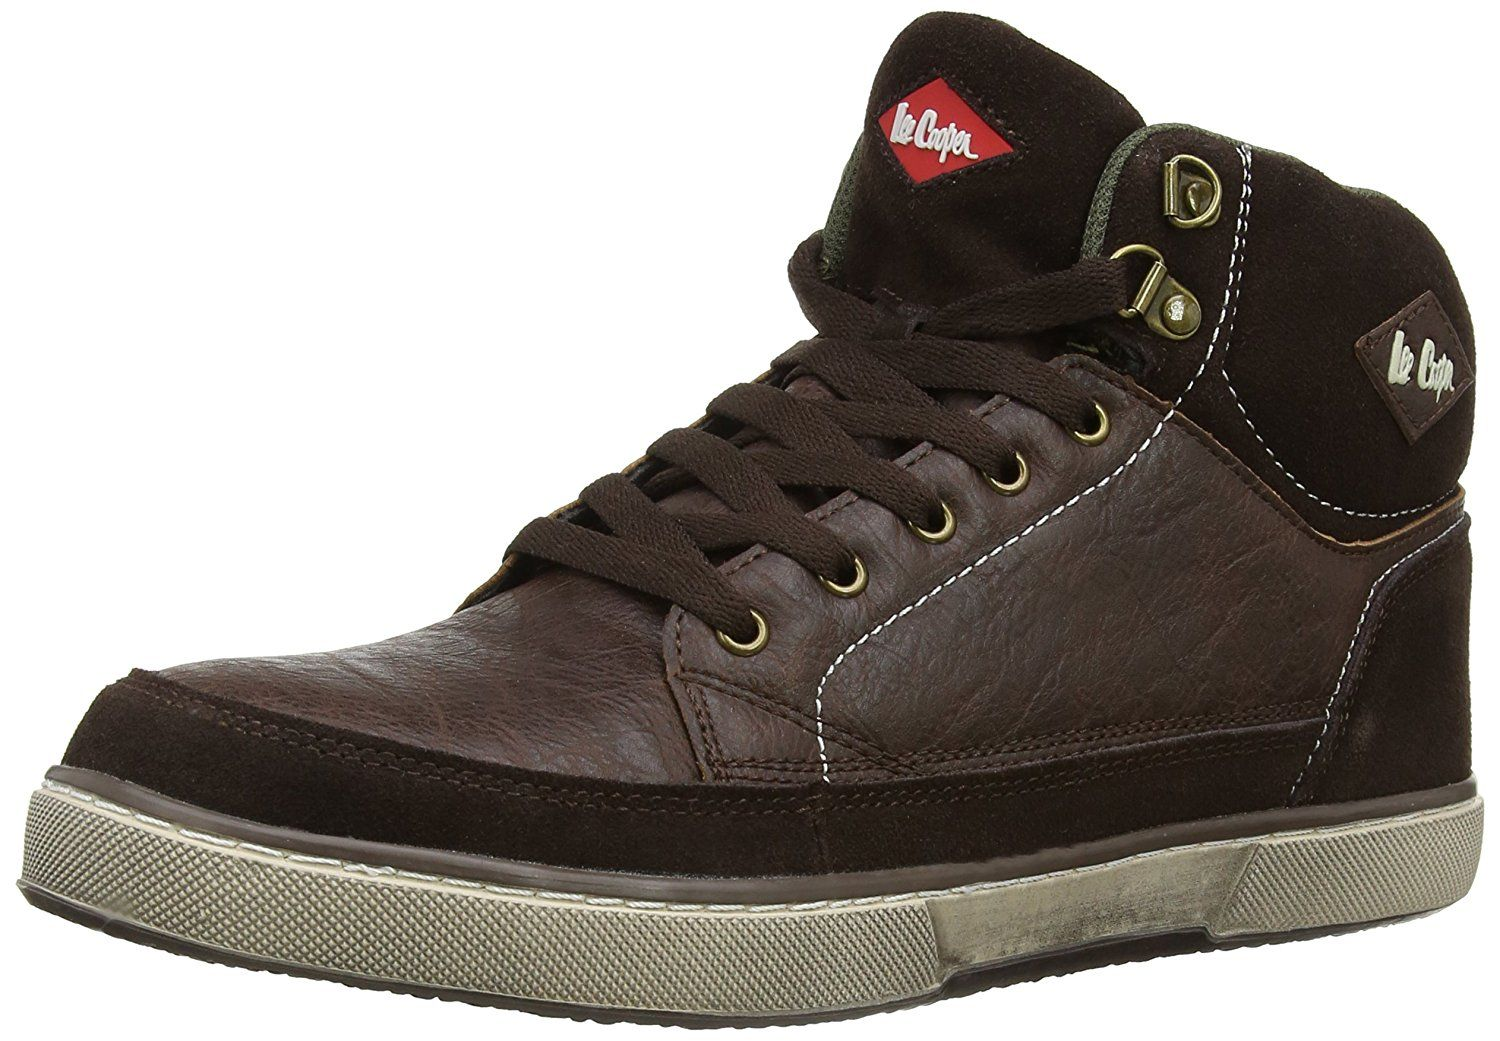 Lee Cooper Workwear Men's 086 S1P Safety Boots Brown